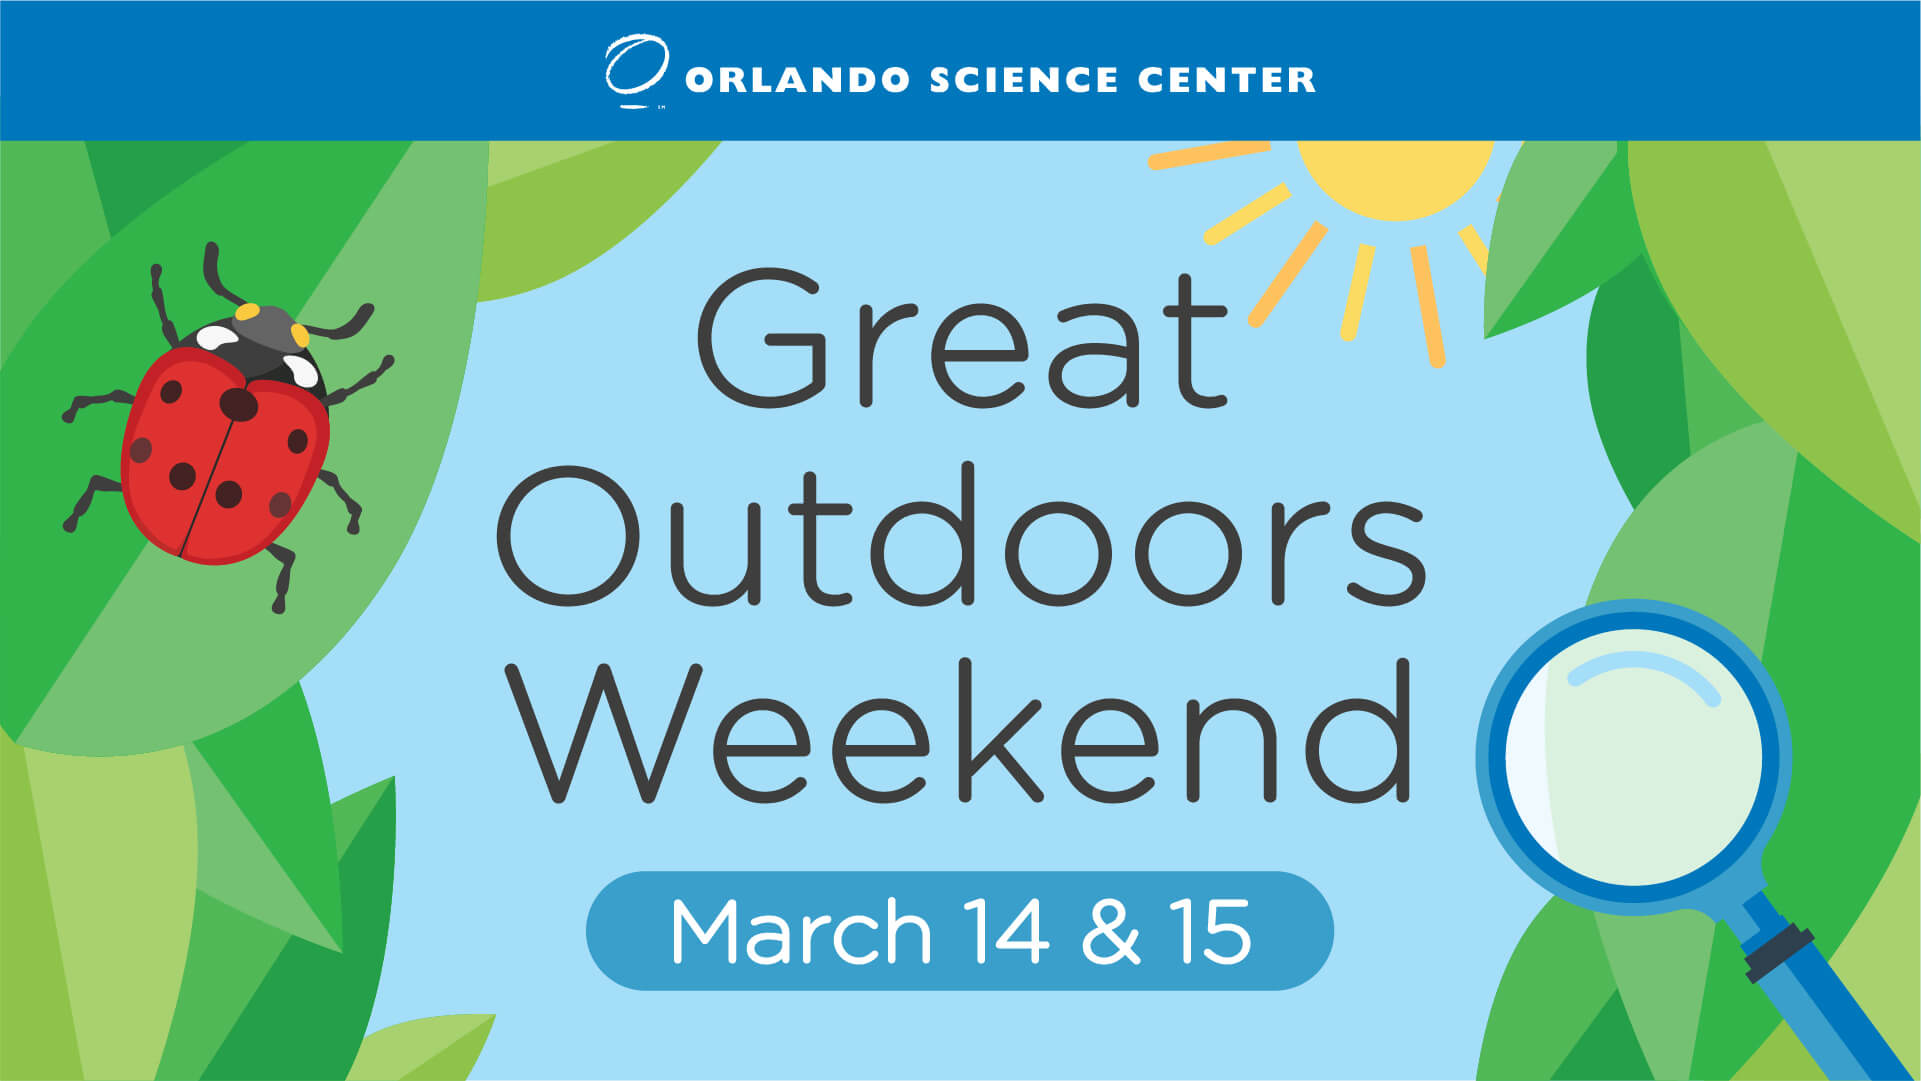 Great Outdoors Weekend March 14 & 15